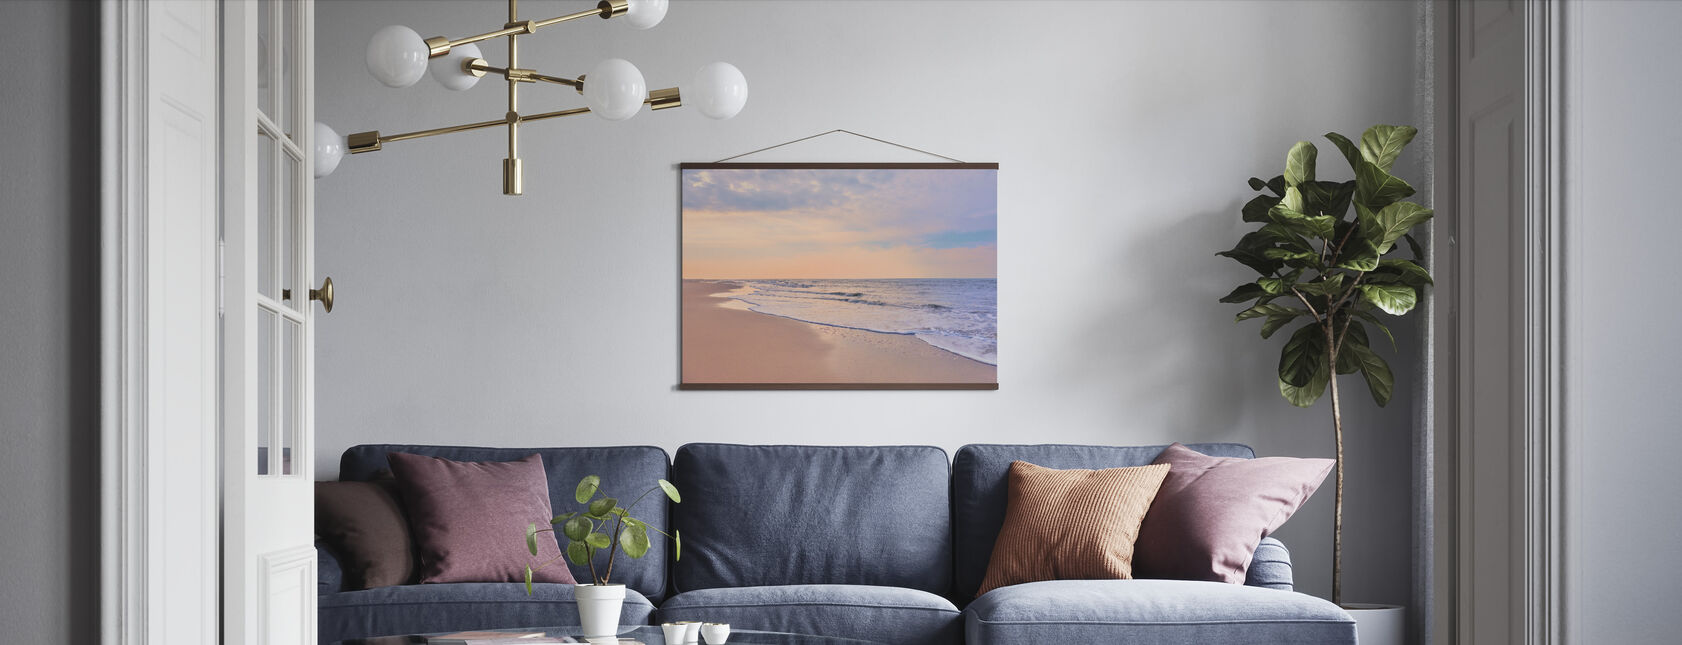 Beach at Dawn - Poster - Living Room